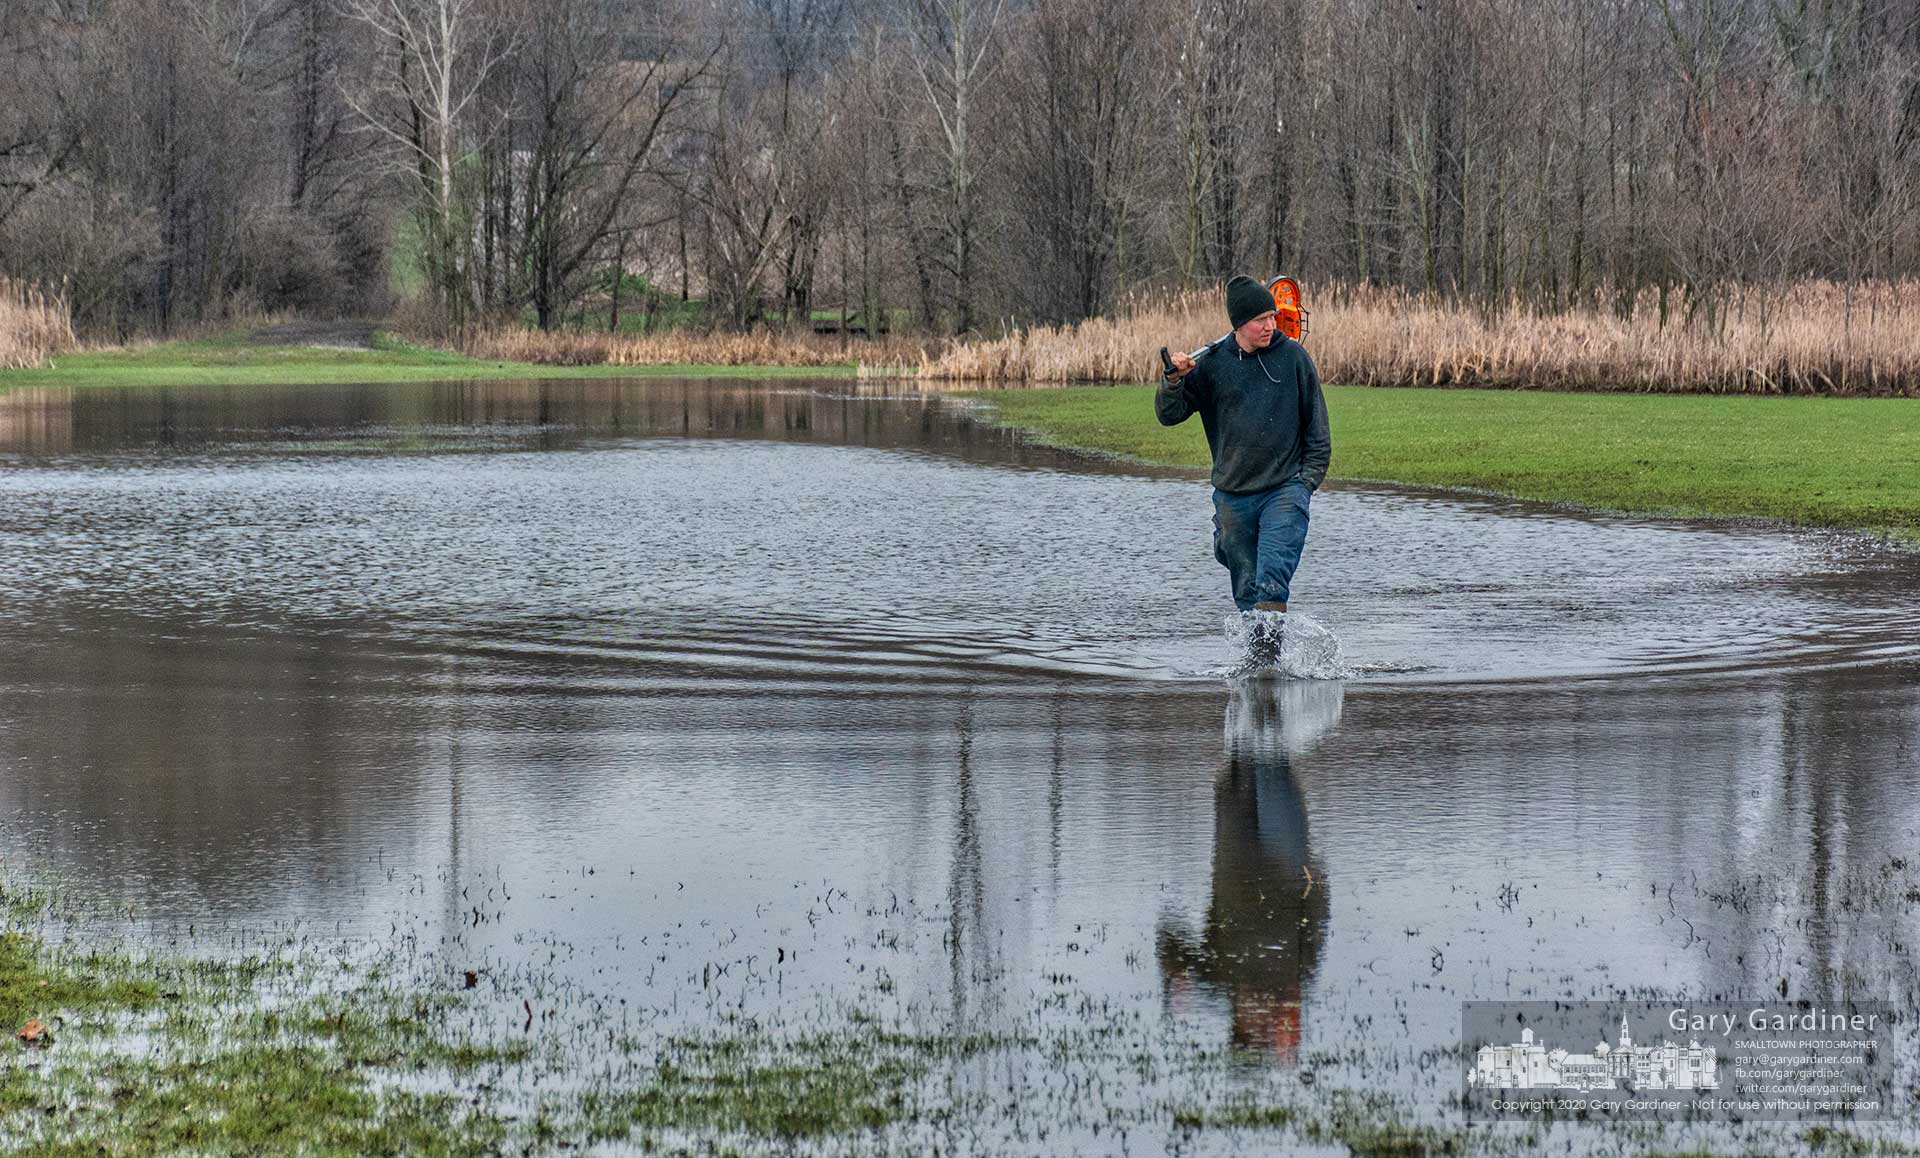 A contractor trods through a flooded field near the Westerville Community Center looking for relatively dry access to measure where the parks department plans a bridge to connect the center addition to a new section of bike path. My Final Photo for March 23, 2020.